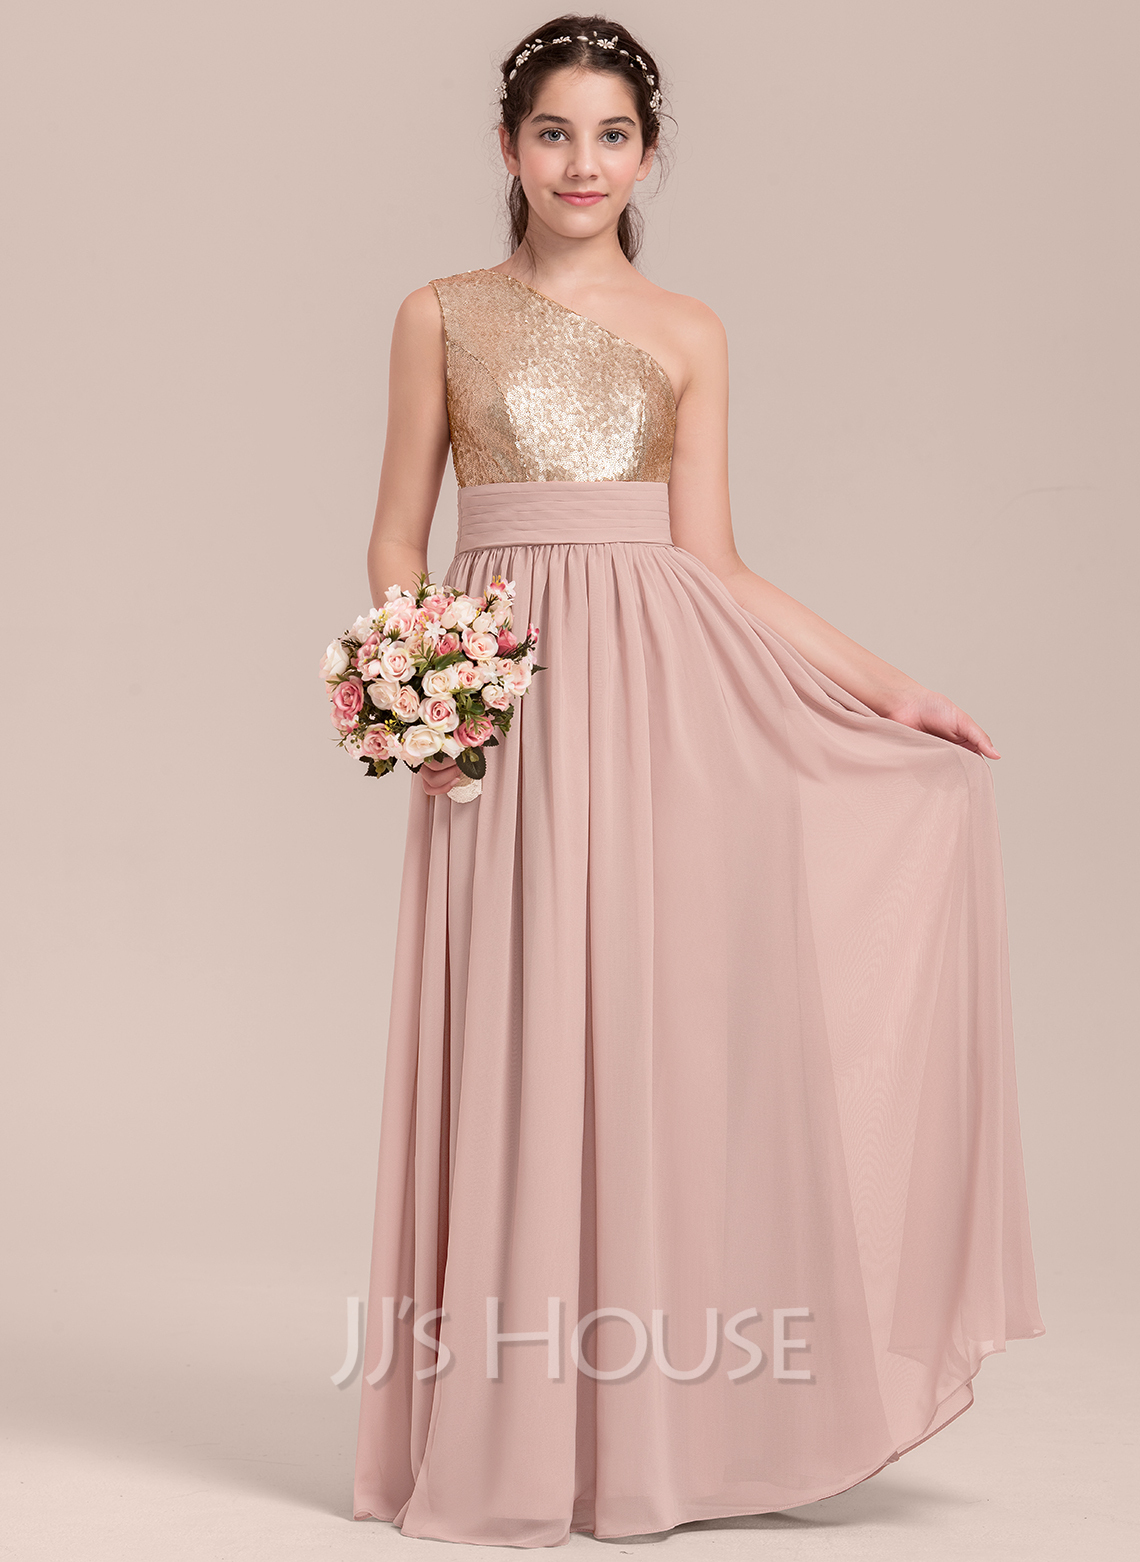 448c1e5eda944 A-Line/Princess Floor-length Flower Girl Dress - Chiffon/Sequined Sleeveless.  Loading zoom